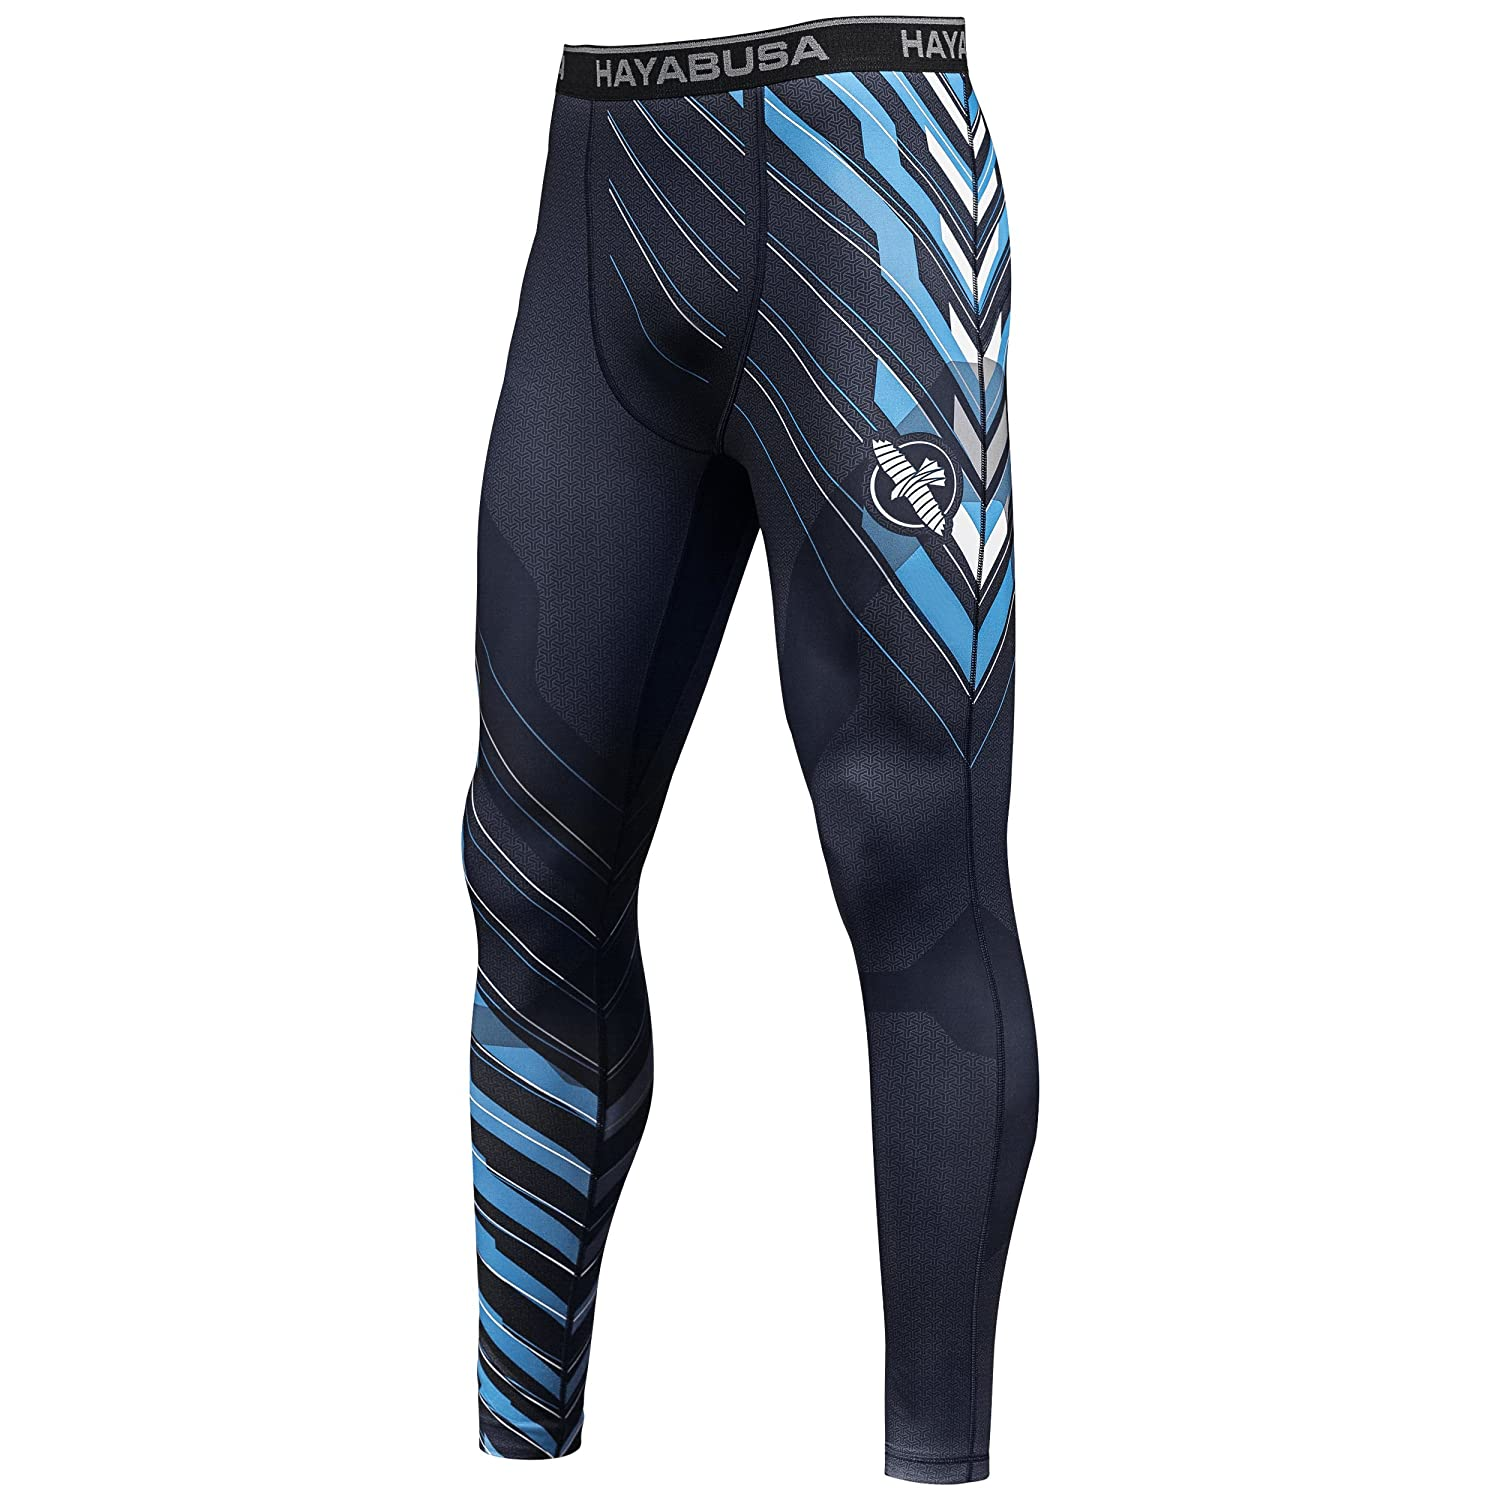 Hayabusa Special Edition Compression Pants, Blue